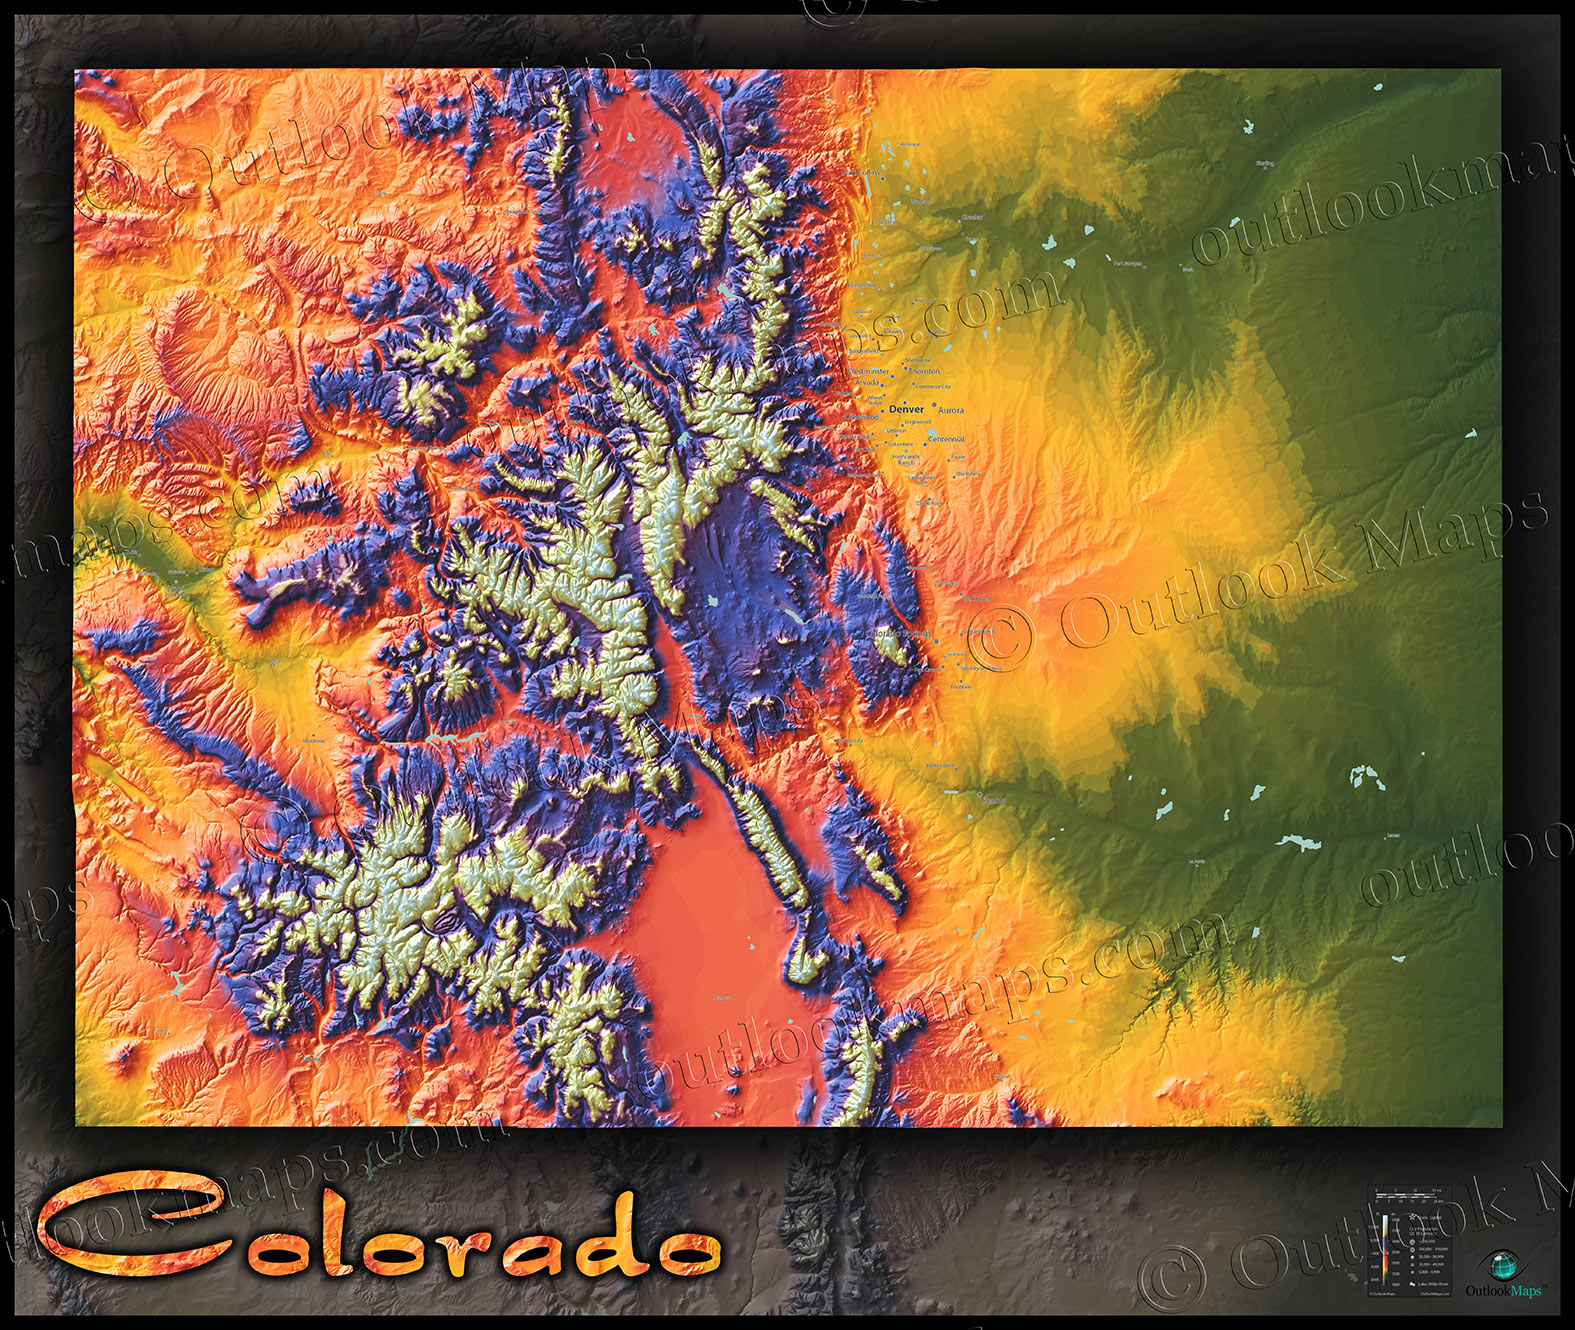 Colorado Topo Maps Colorado Map | Colorful 3D Topography of Rocky Mountains Colorado Topo Maps